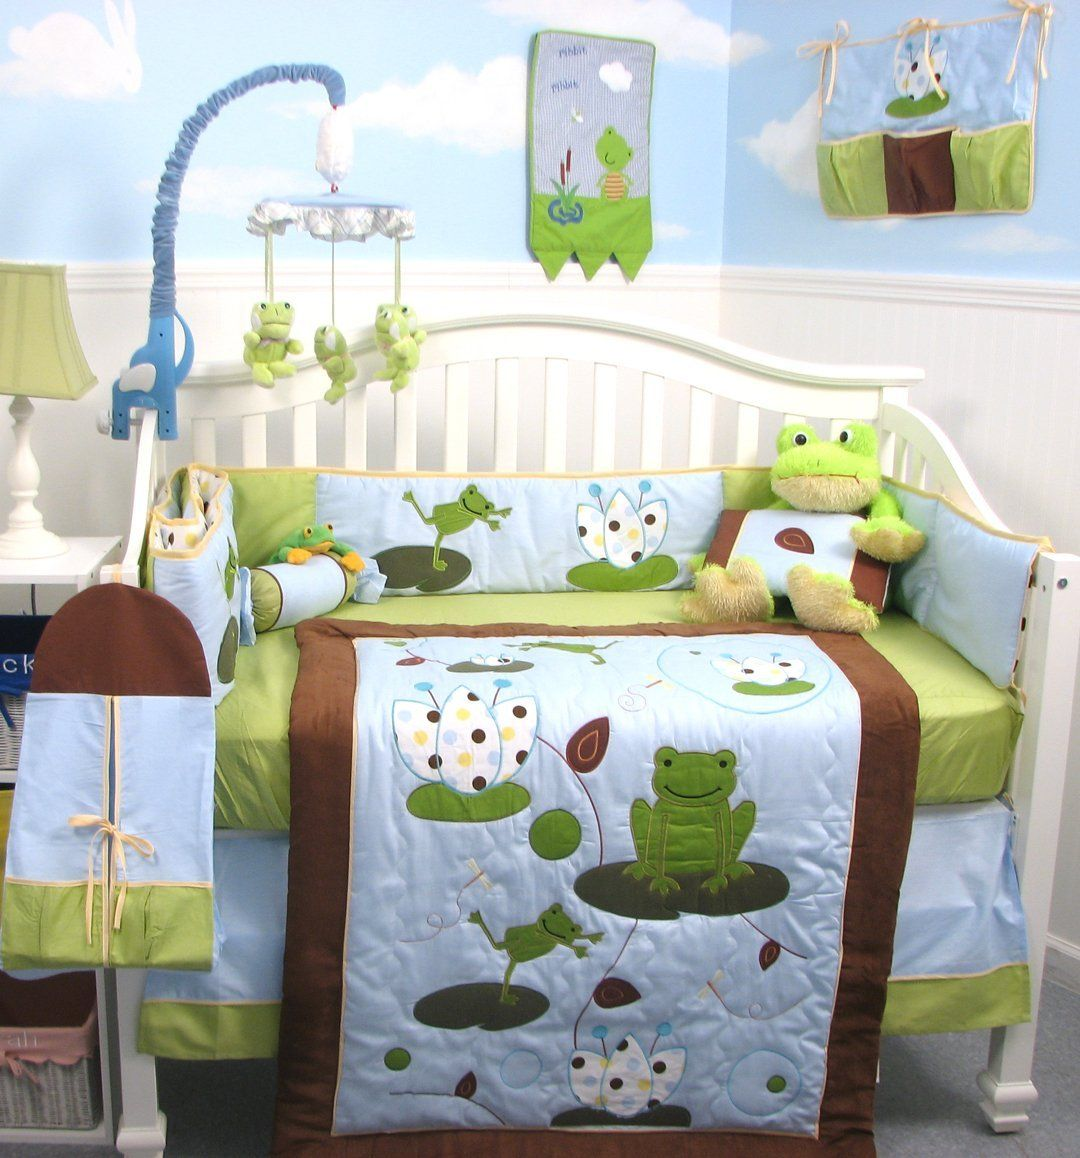 Design Boy Nursery Themes best baby nursery themes nowadays modern home design soho froggies party crib bedding set 13 pcs included diaper bag with changing pad bottle case sets